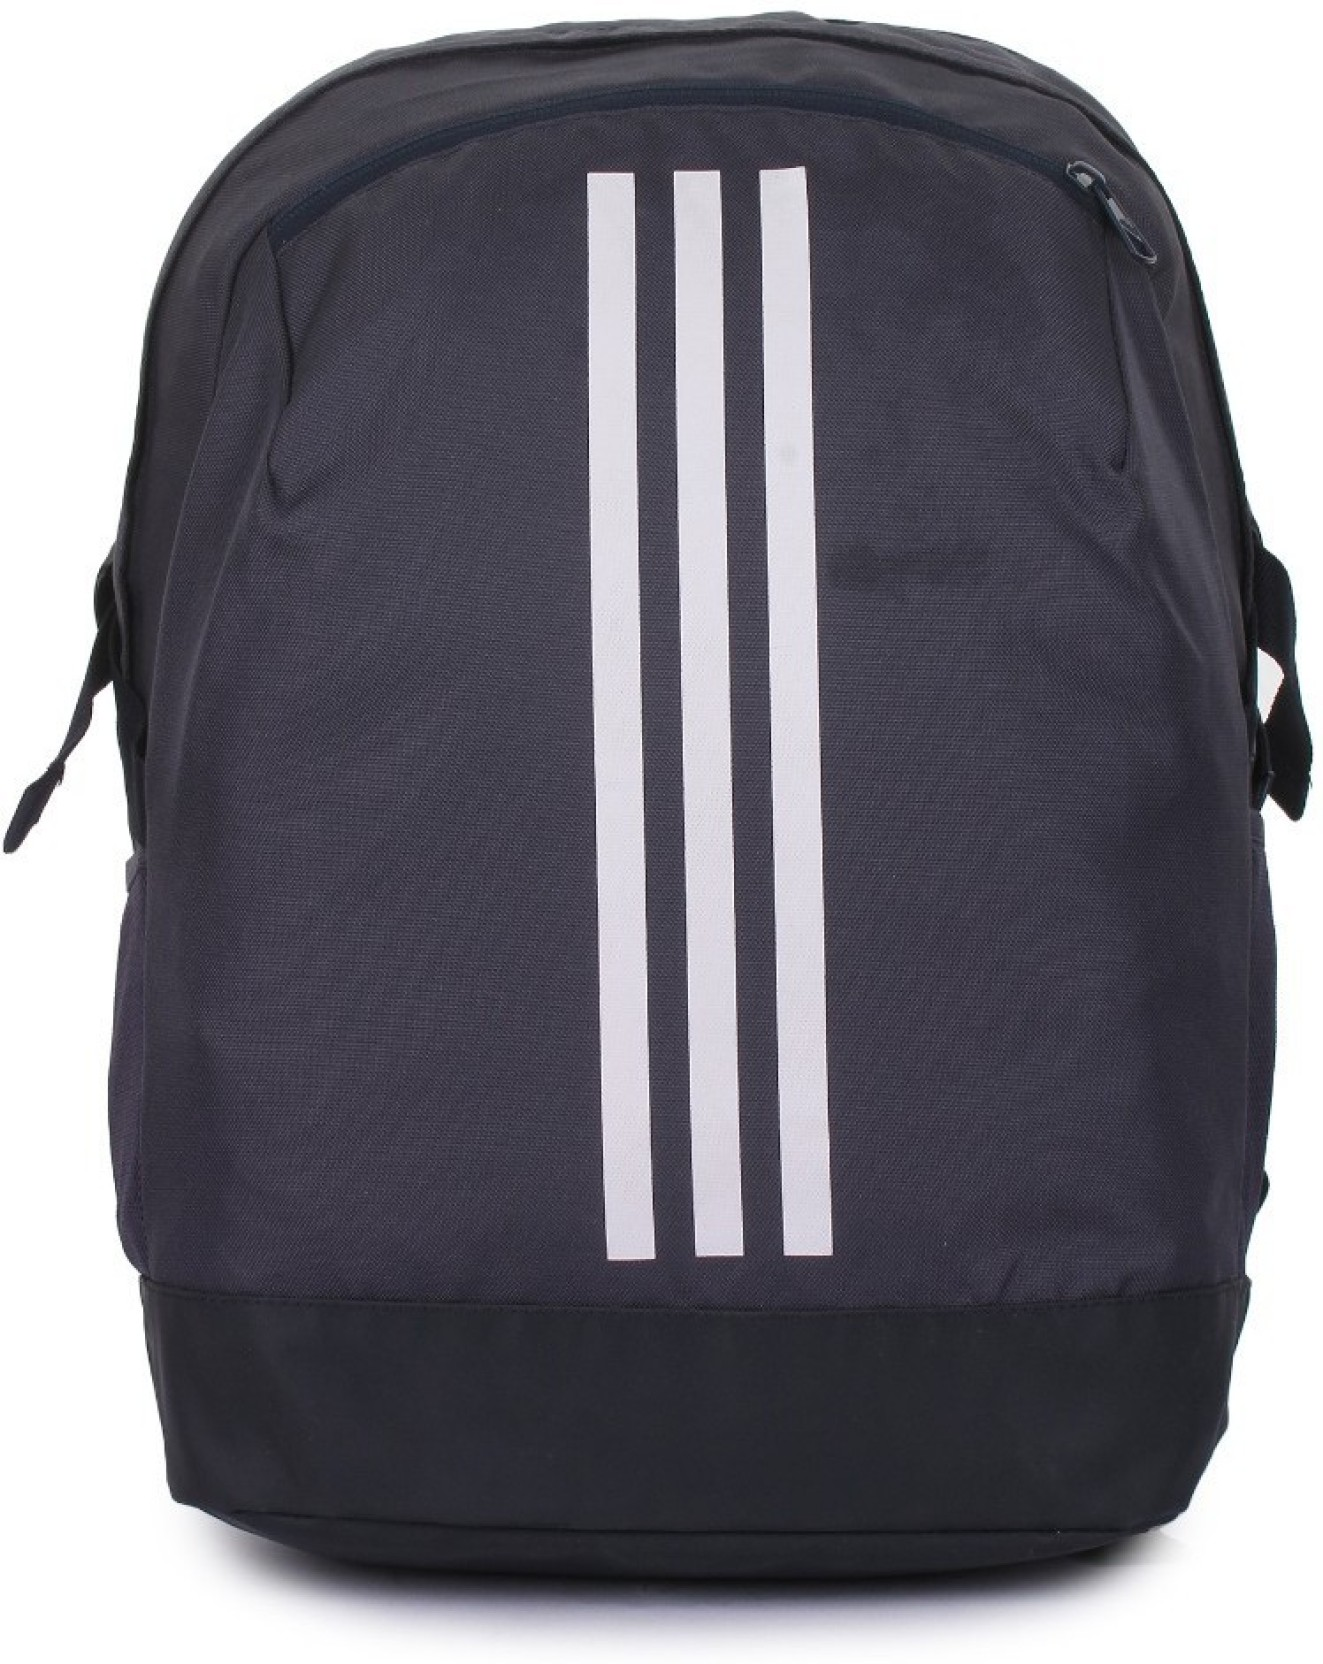 ADIDAS Power Iv M 23 L Laptop Backpack Blue - Price in India ... ba4f2c382652a